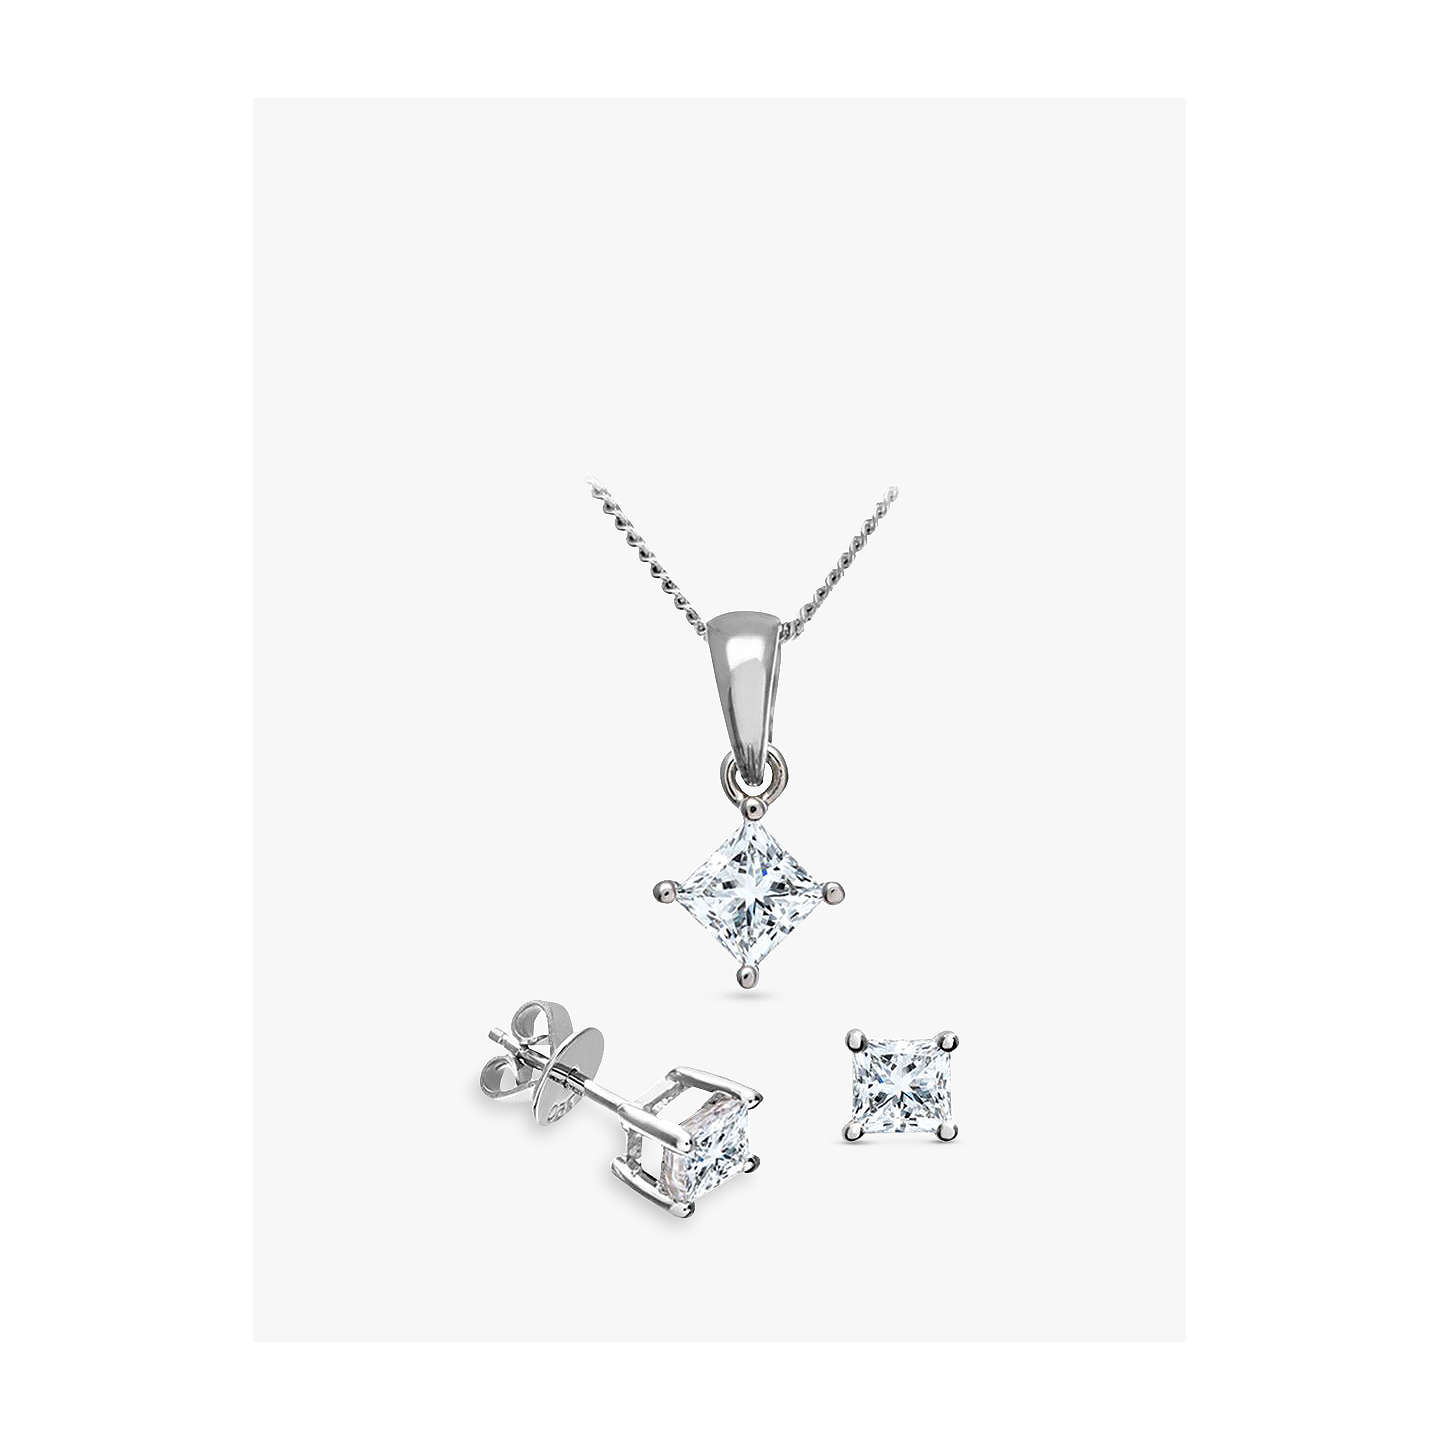 necklace cut diamond carat one miracle smart princess pendant ideas